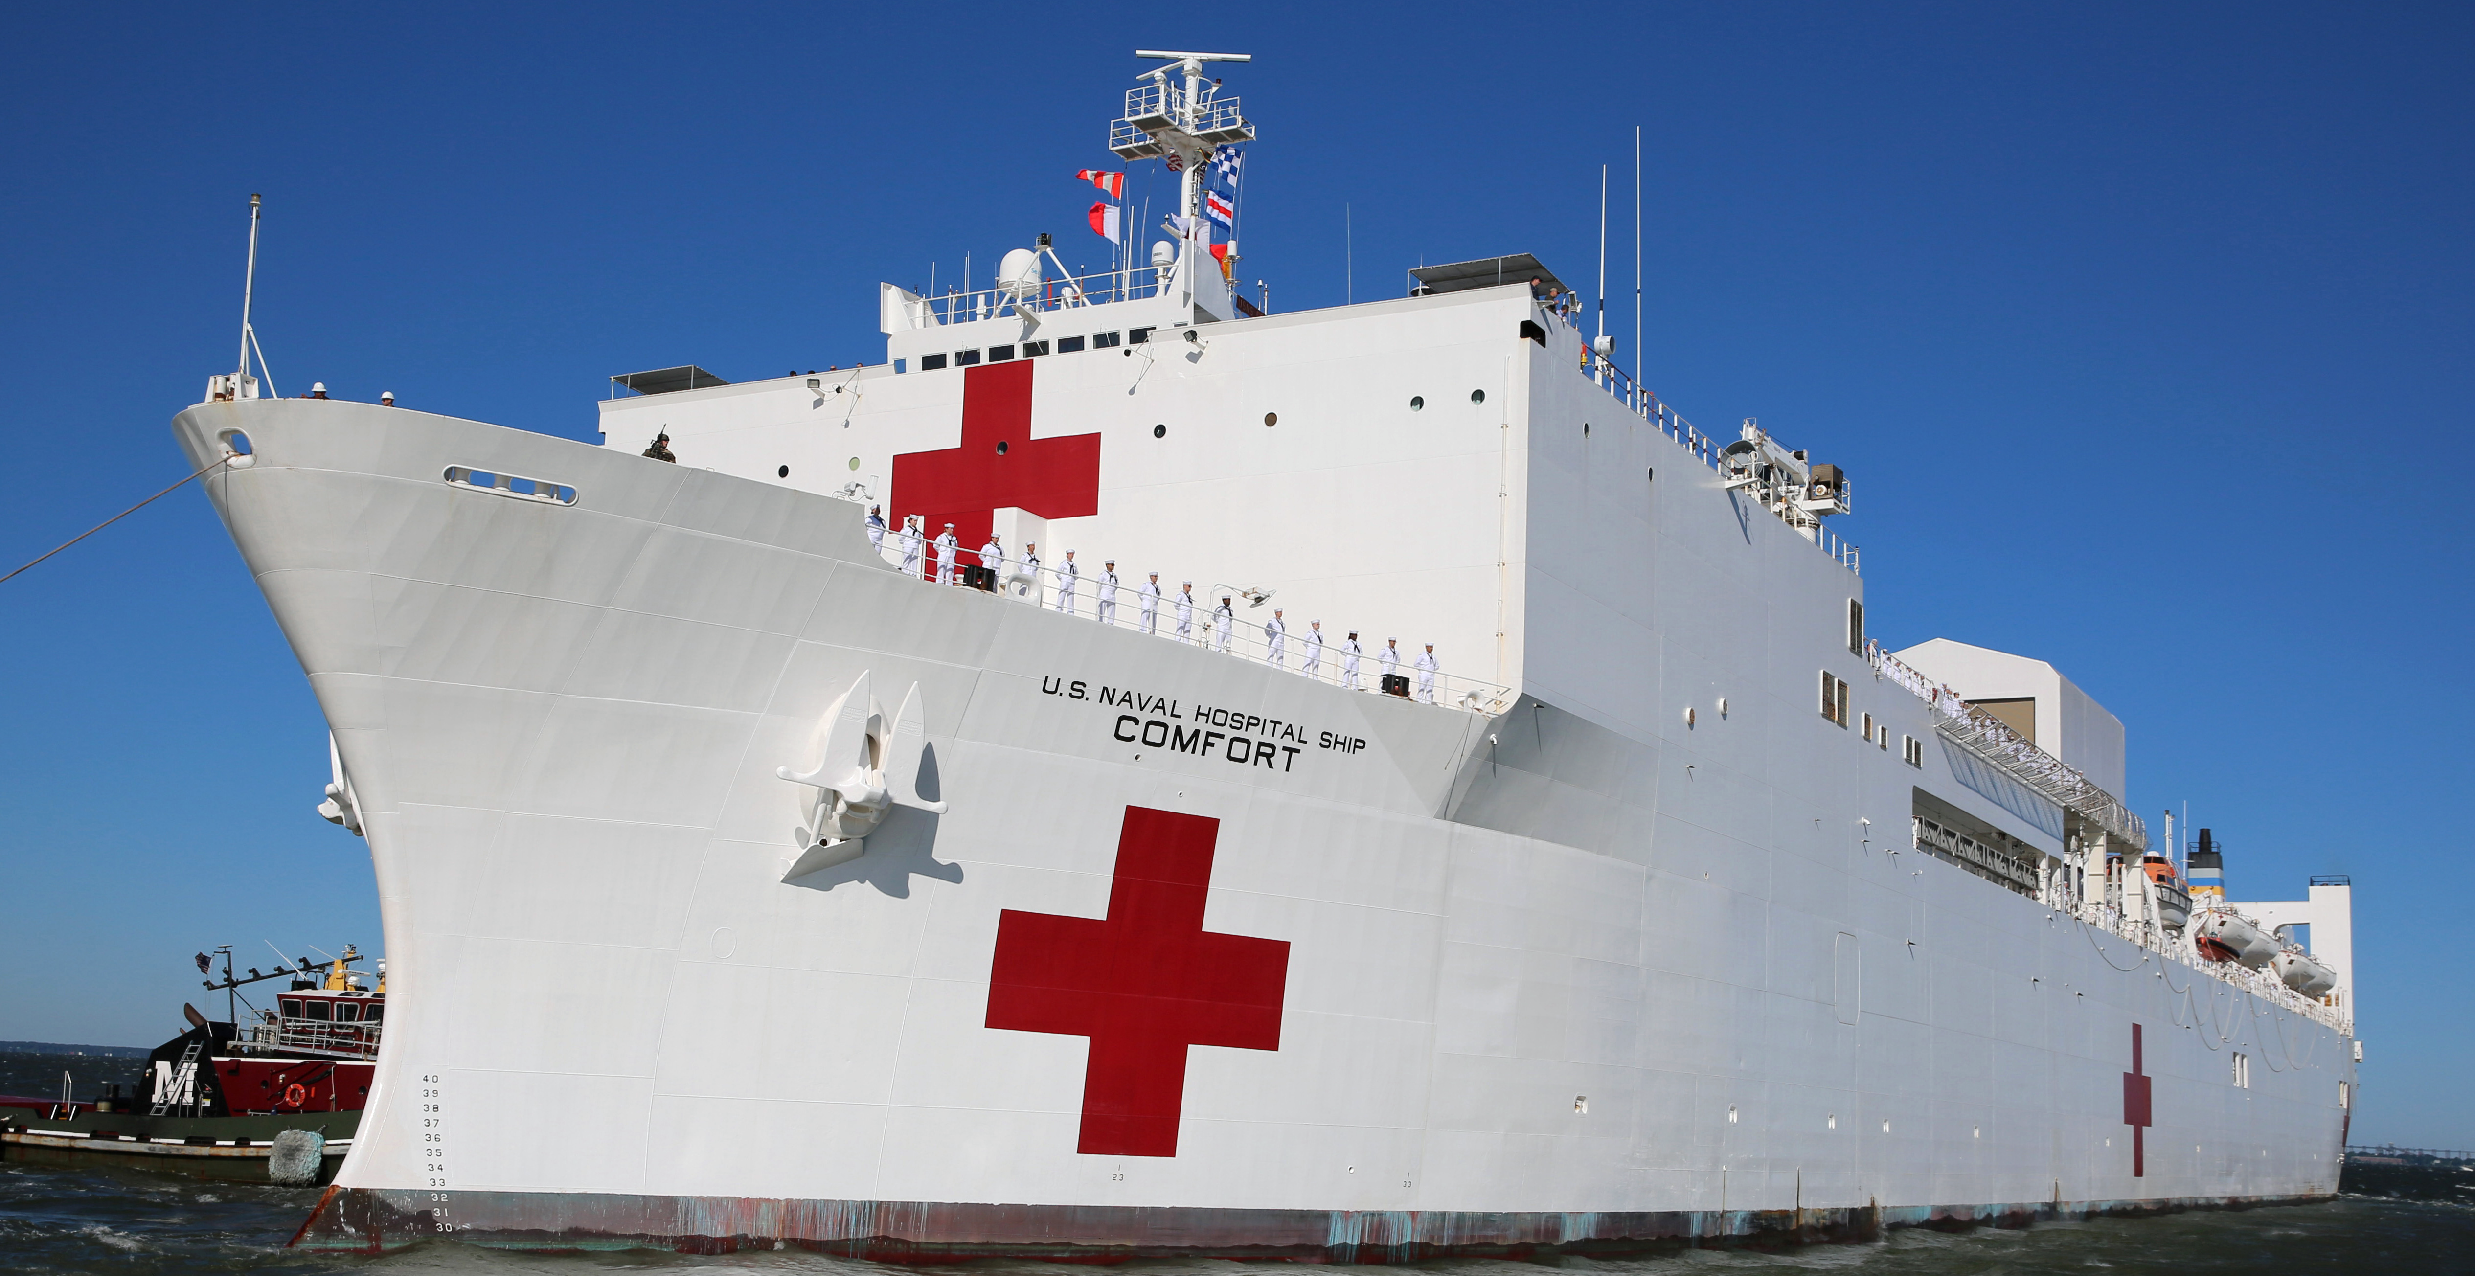 Navy Hospital Ship in New York Only Has 20 Patients But 1,000 Bed Capacity